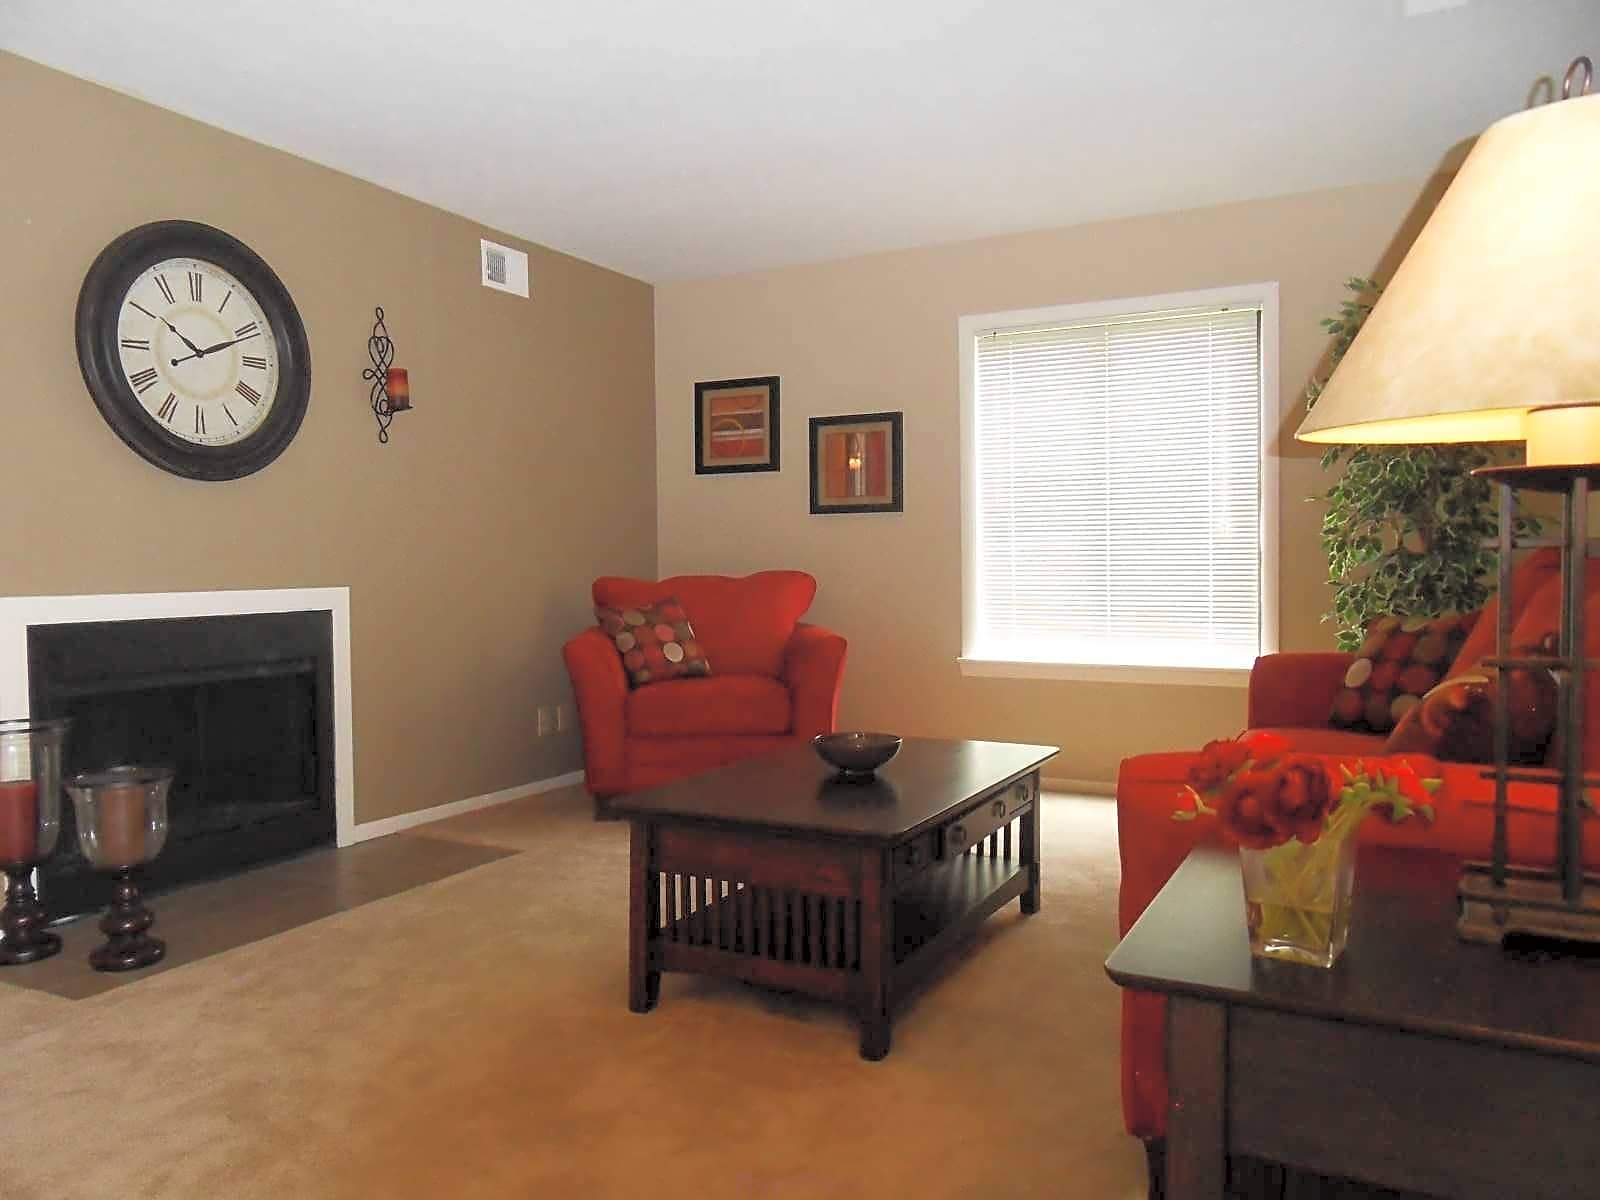 Woodbridge Apartments of Fort Wayne for rent in Fort Wayne